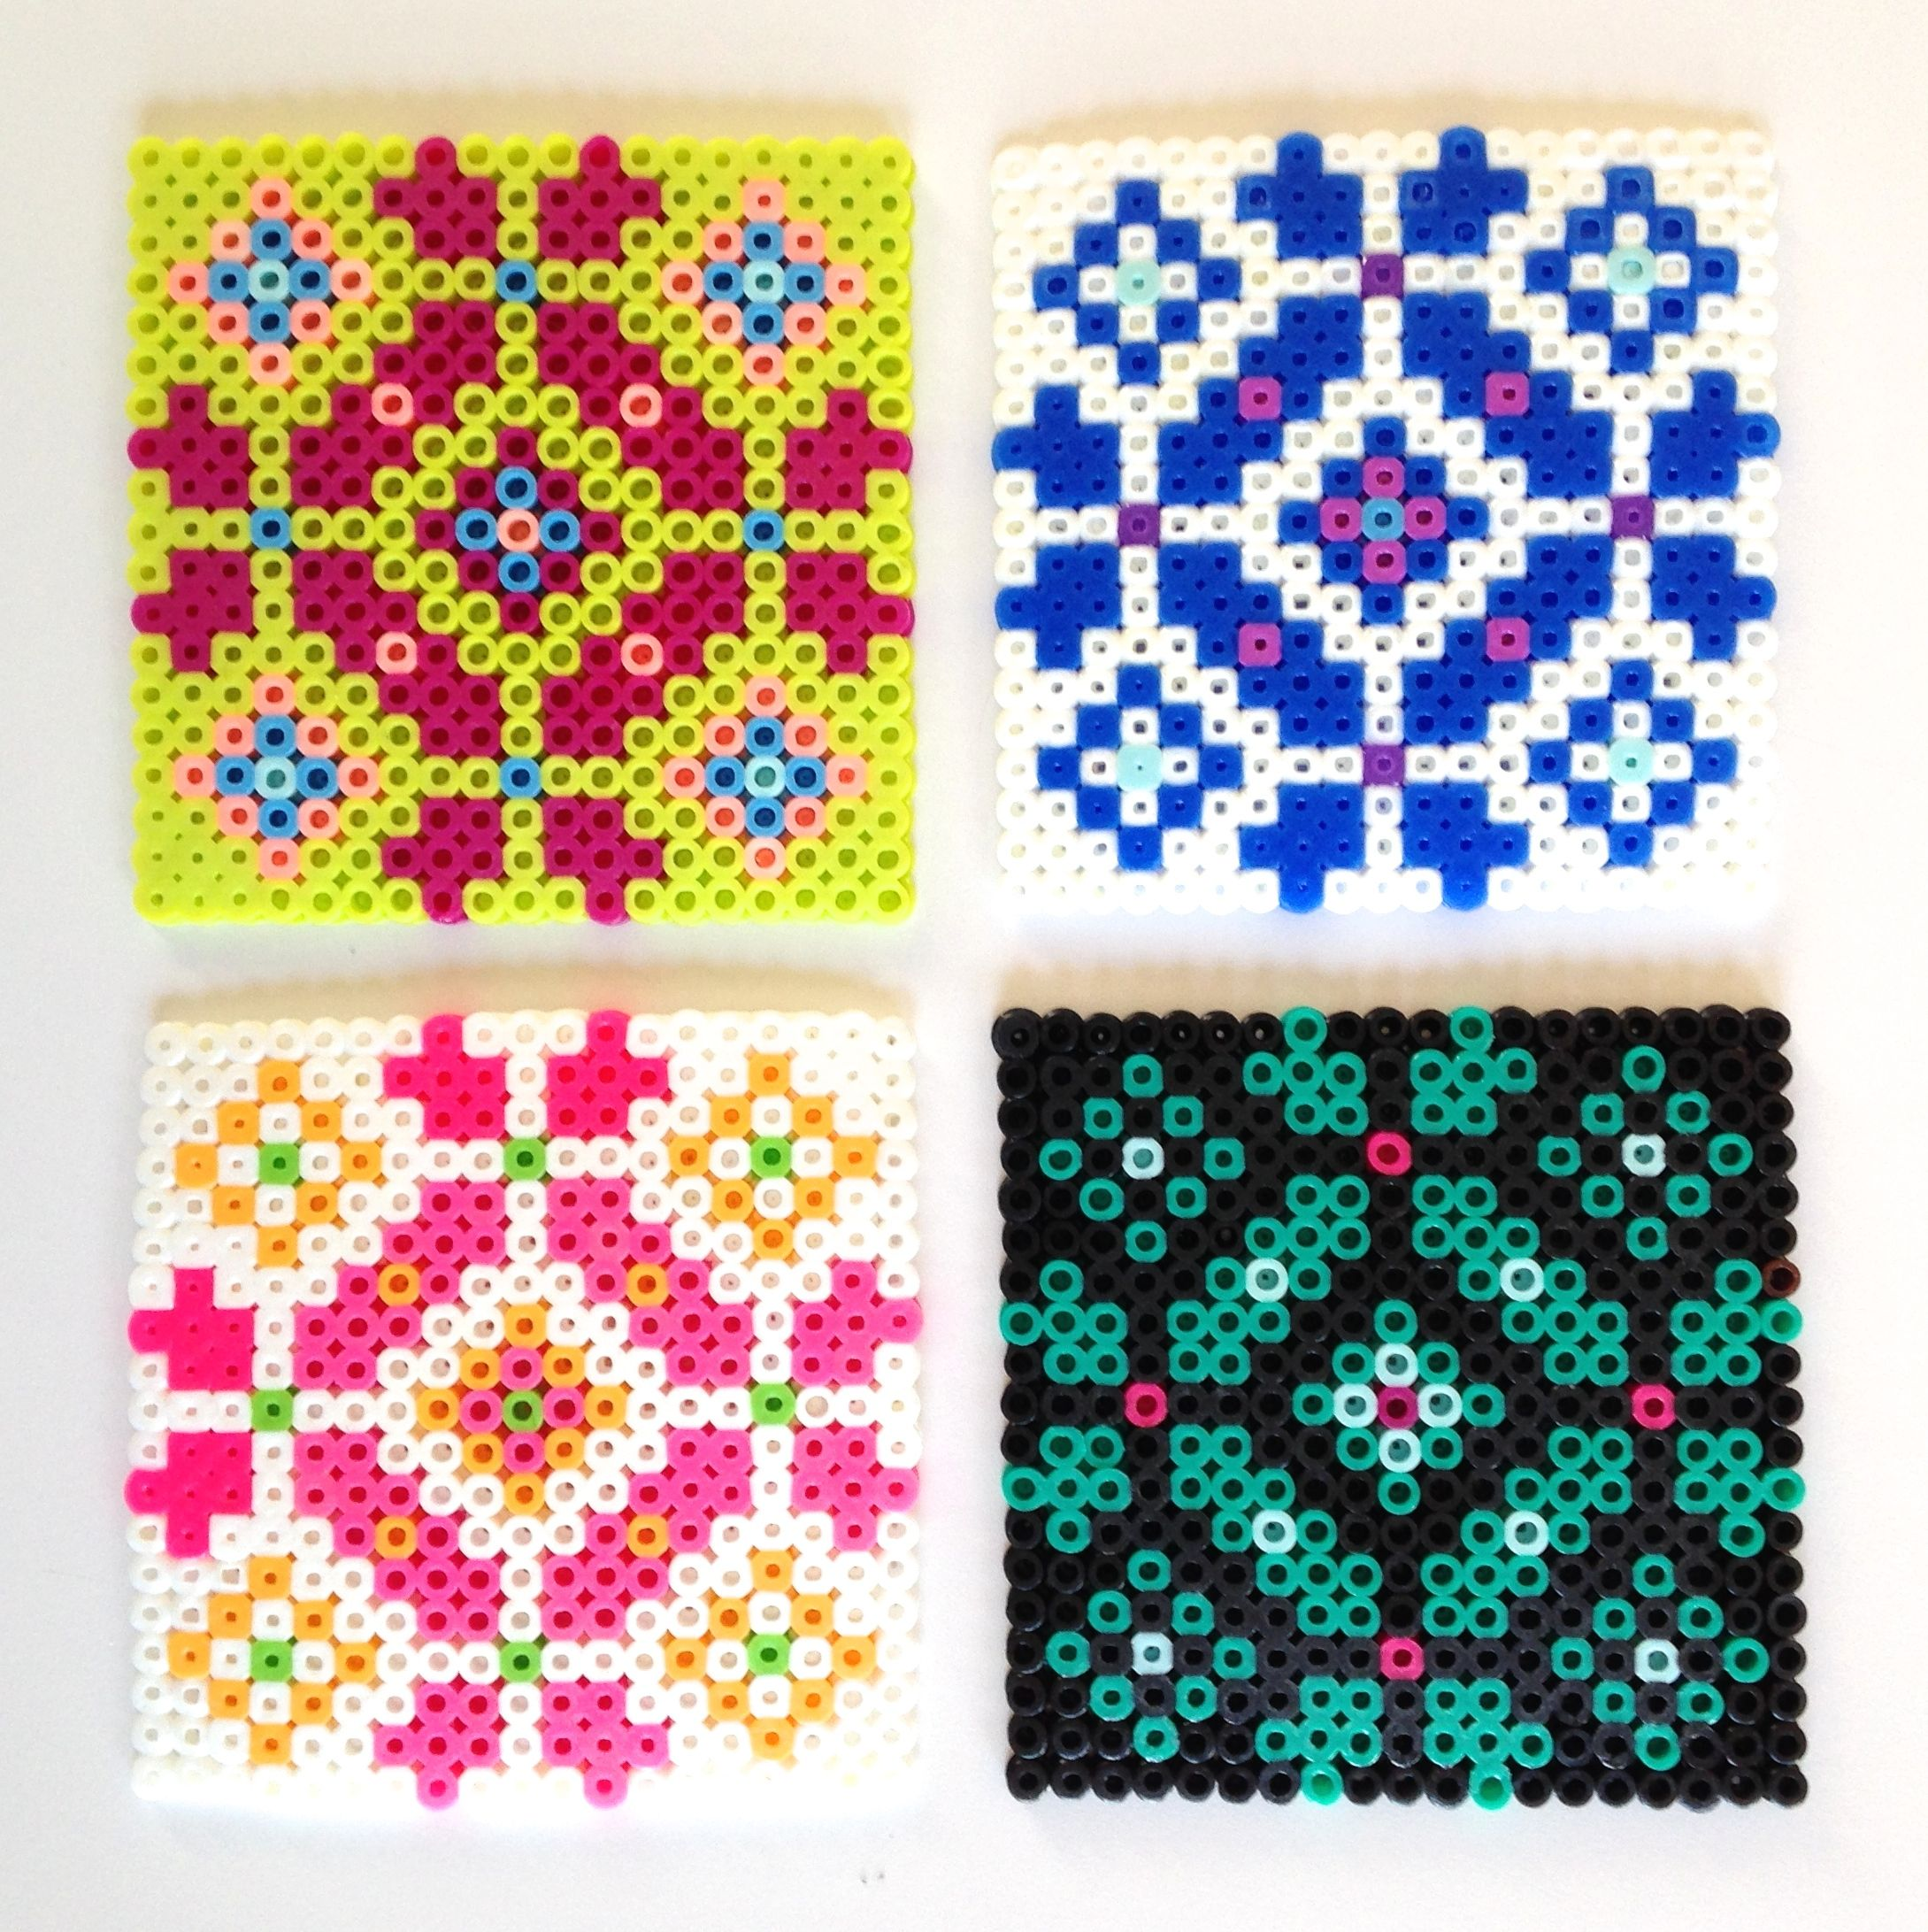 Buegelperlen Vorlagen Yin Und Yang Hama Bead Coasters/ Scandi Pattern By Homemade City